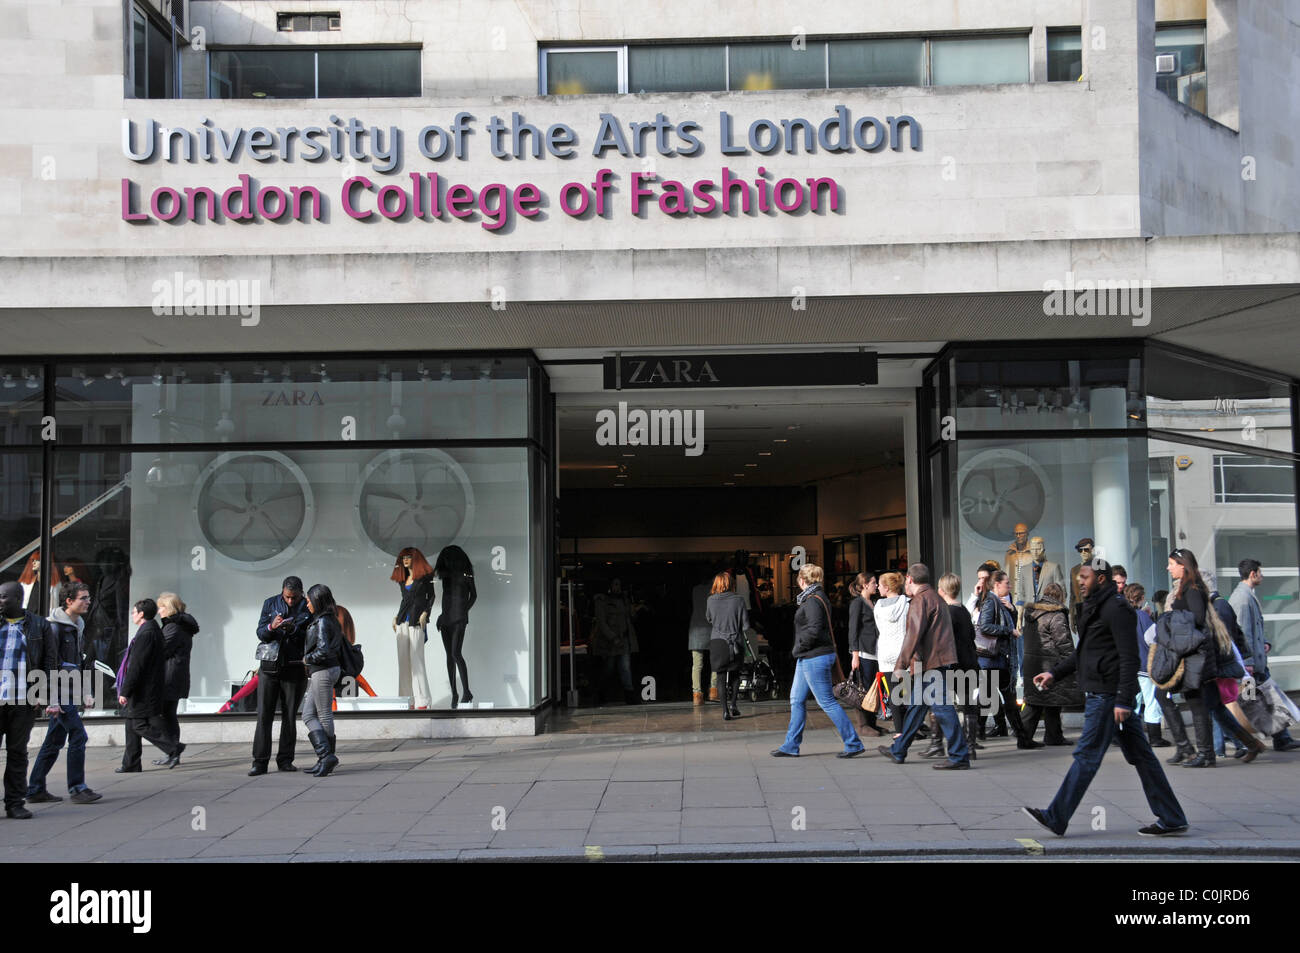 University of the arts london fashion